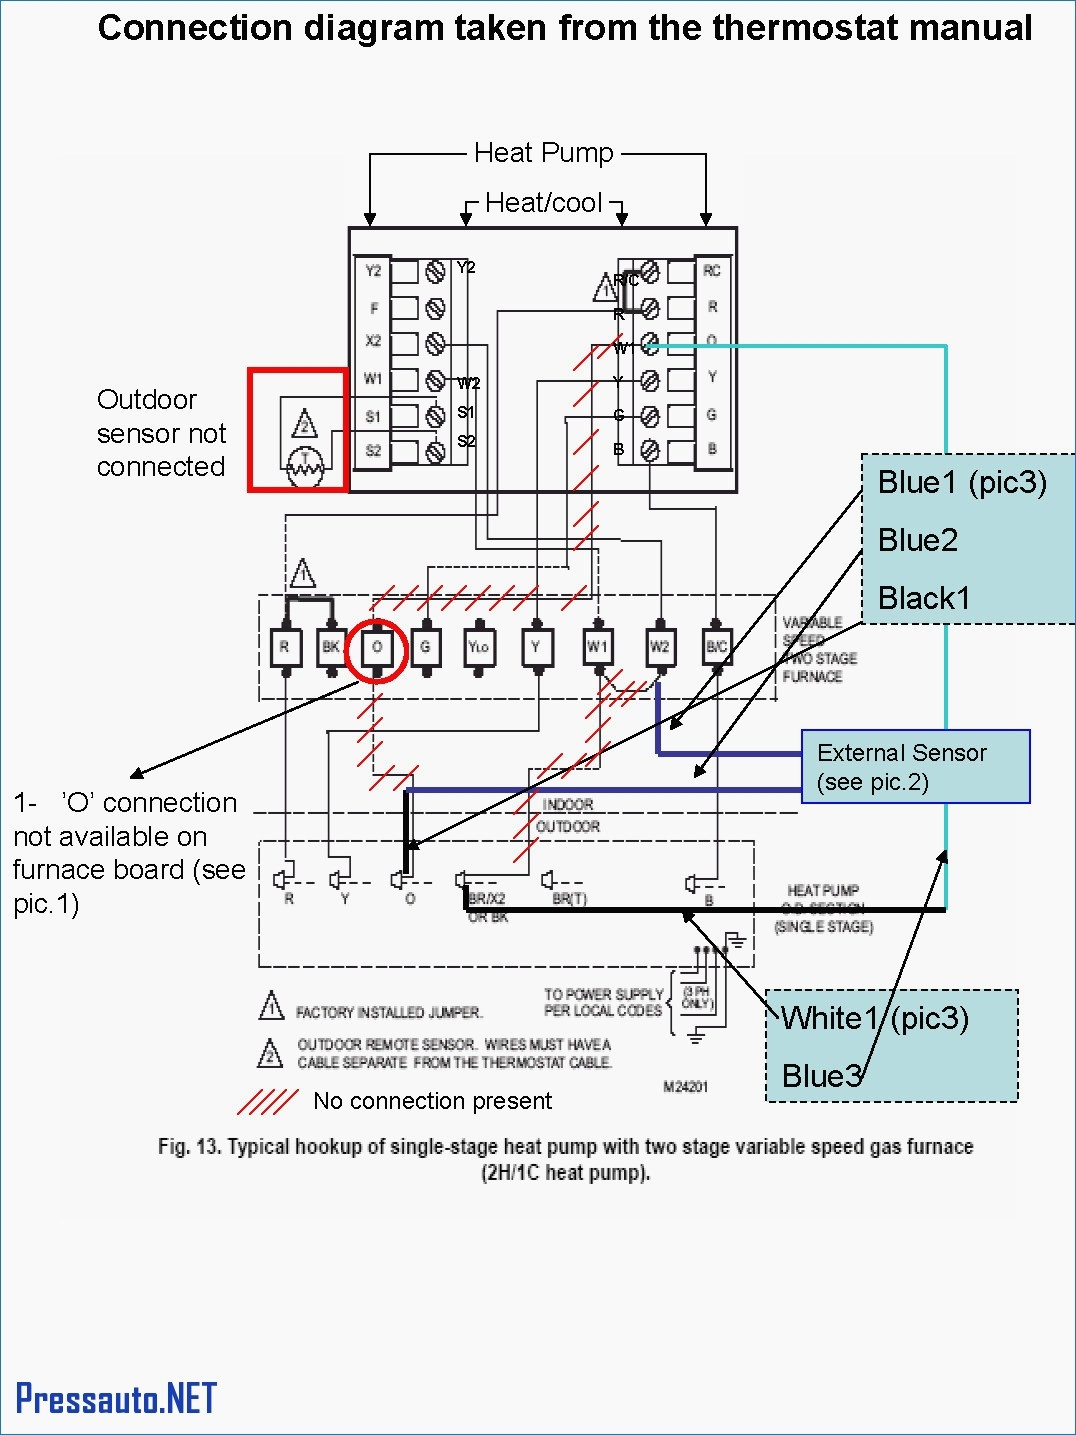 Trane Heat Pump Wire Diagram - Wiring Diagrams on